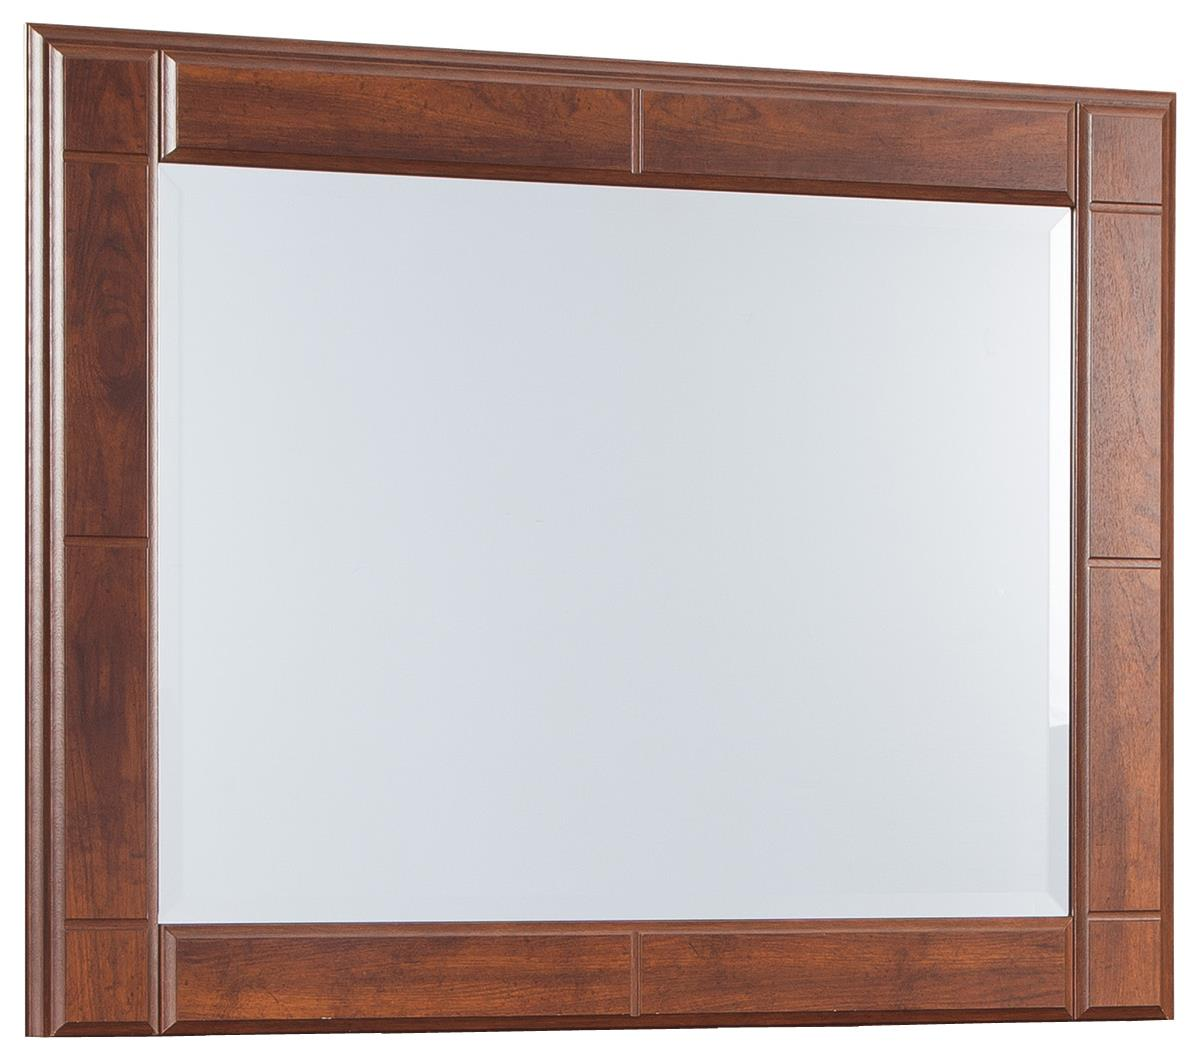 Signature Design by Ashley Brittberg Bedroom Mirror - Item Number: B265-36